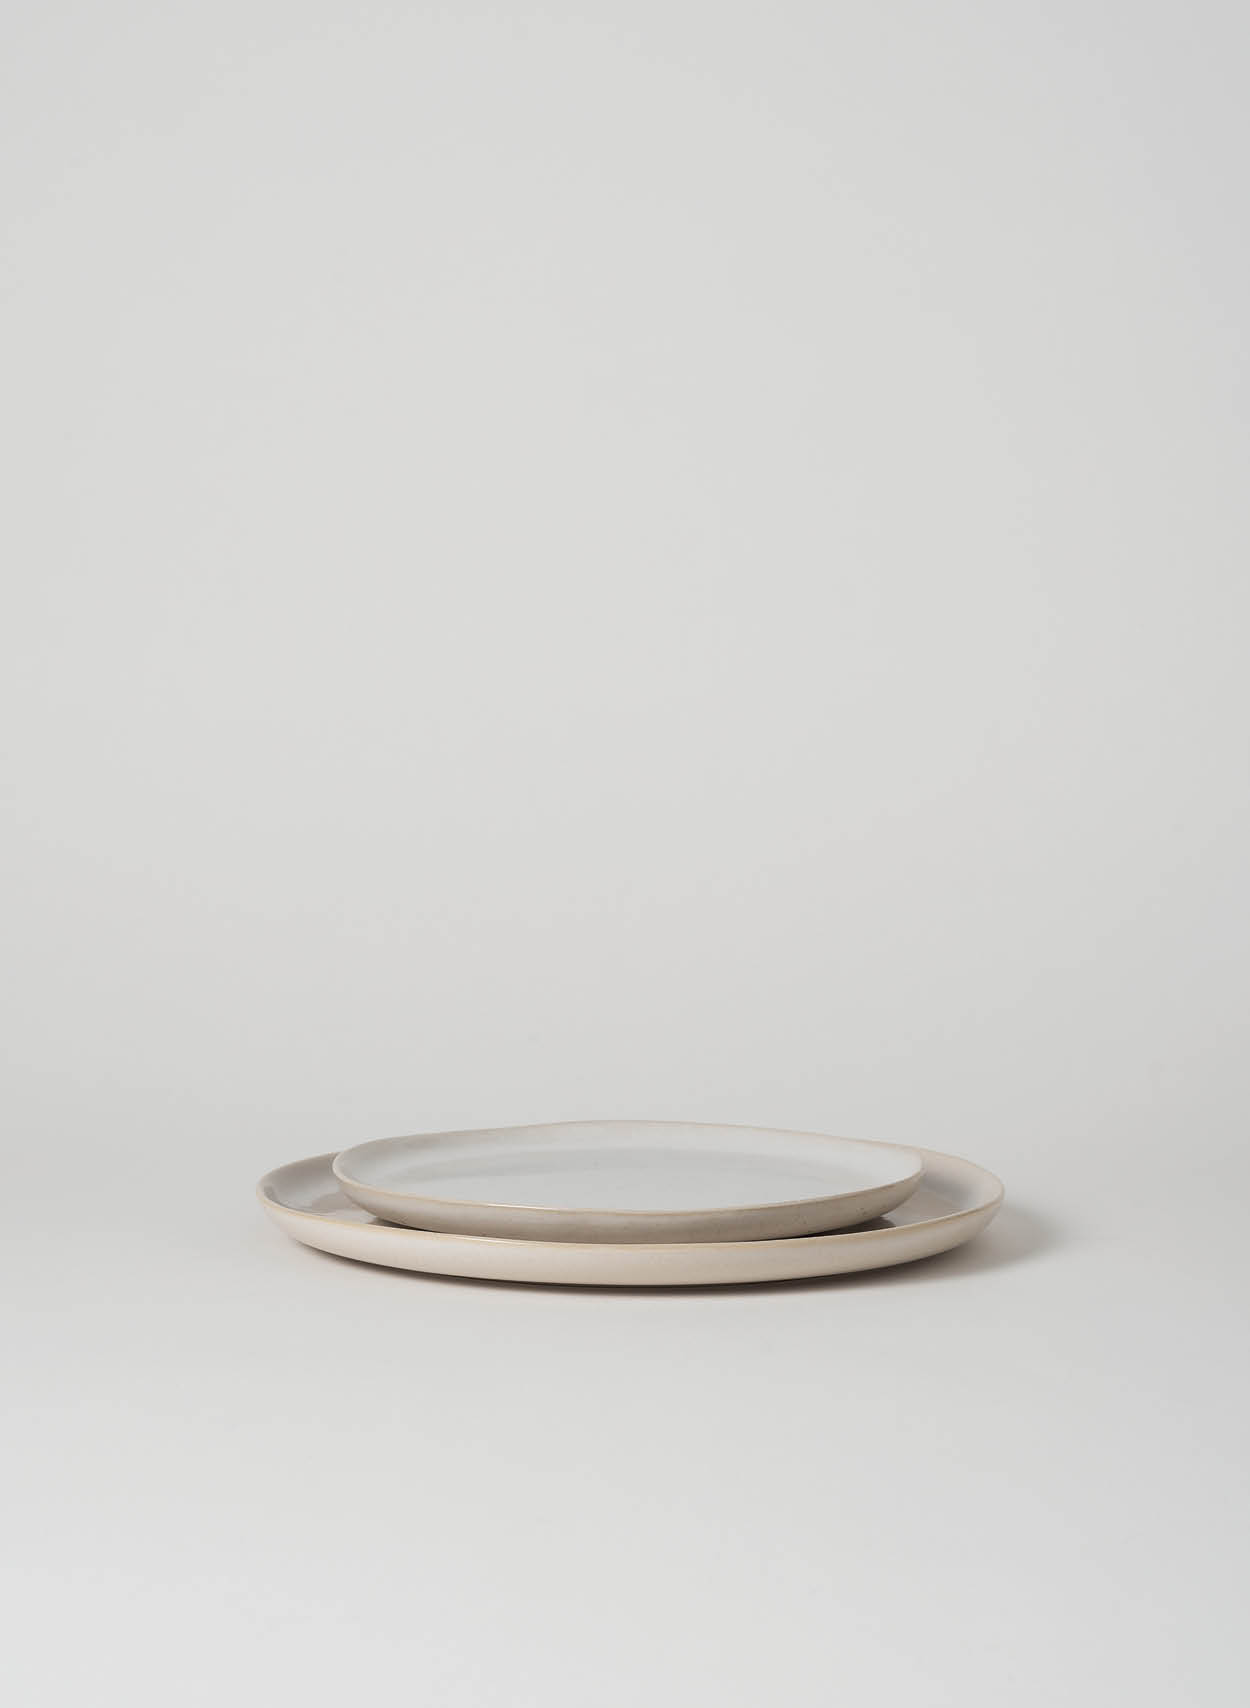 Finch Plates  from $24.90